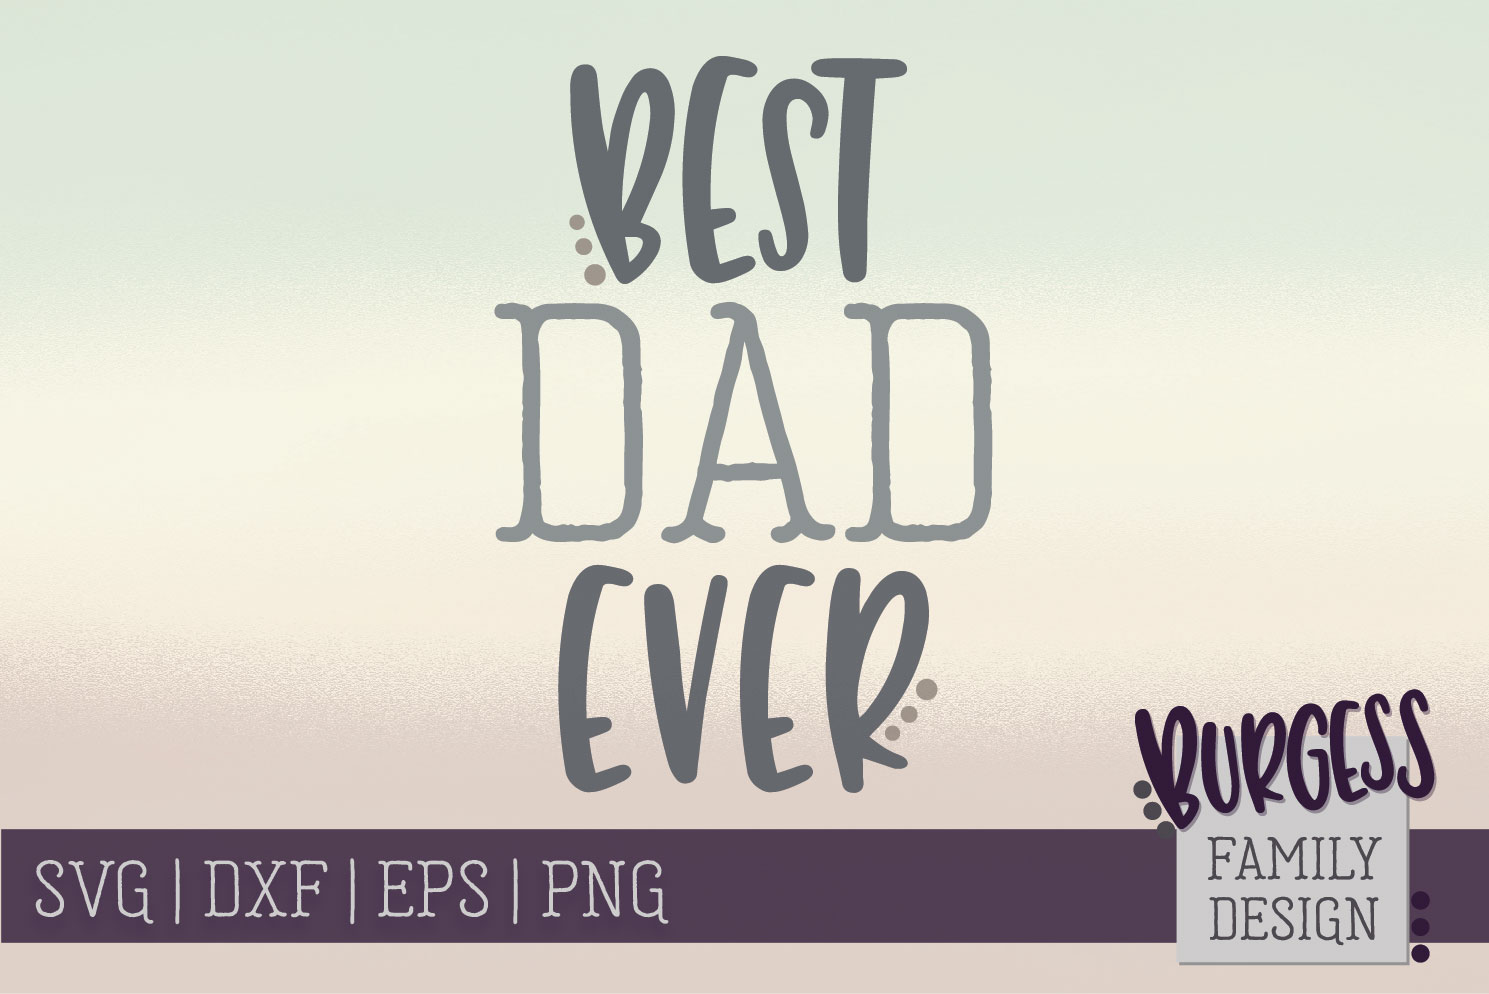 Best dad ever | SVG DXF EPS PNG example image 2